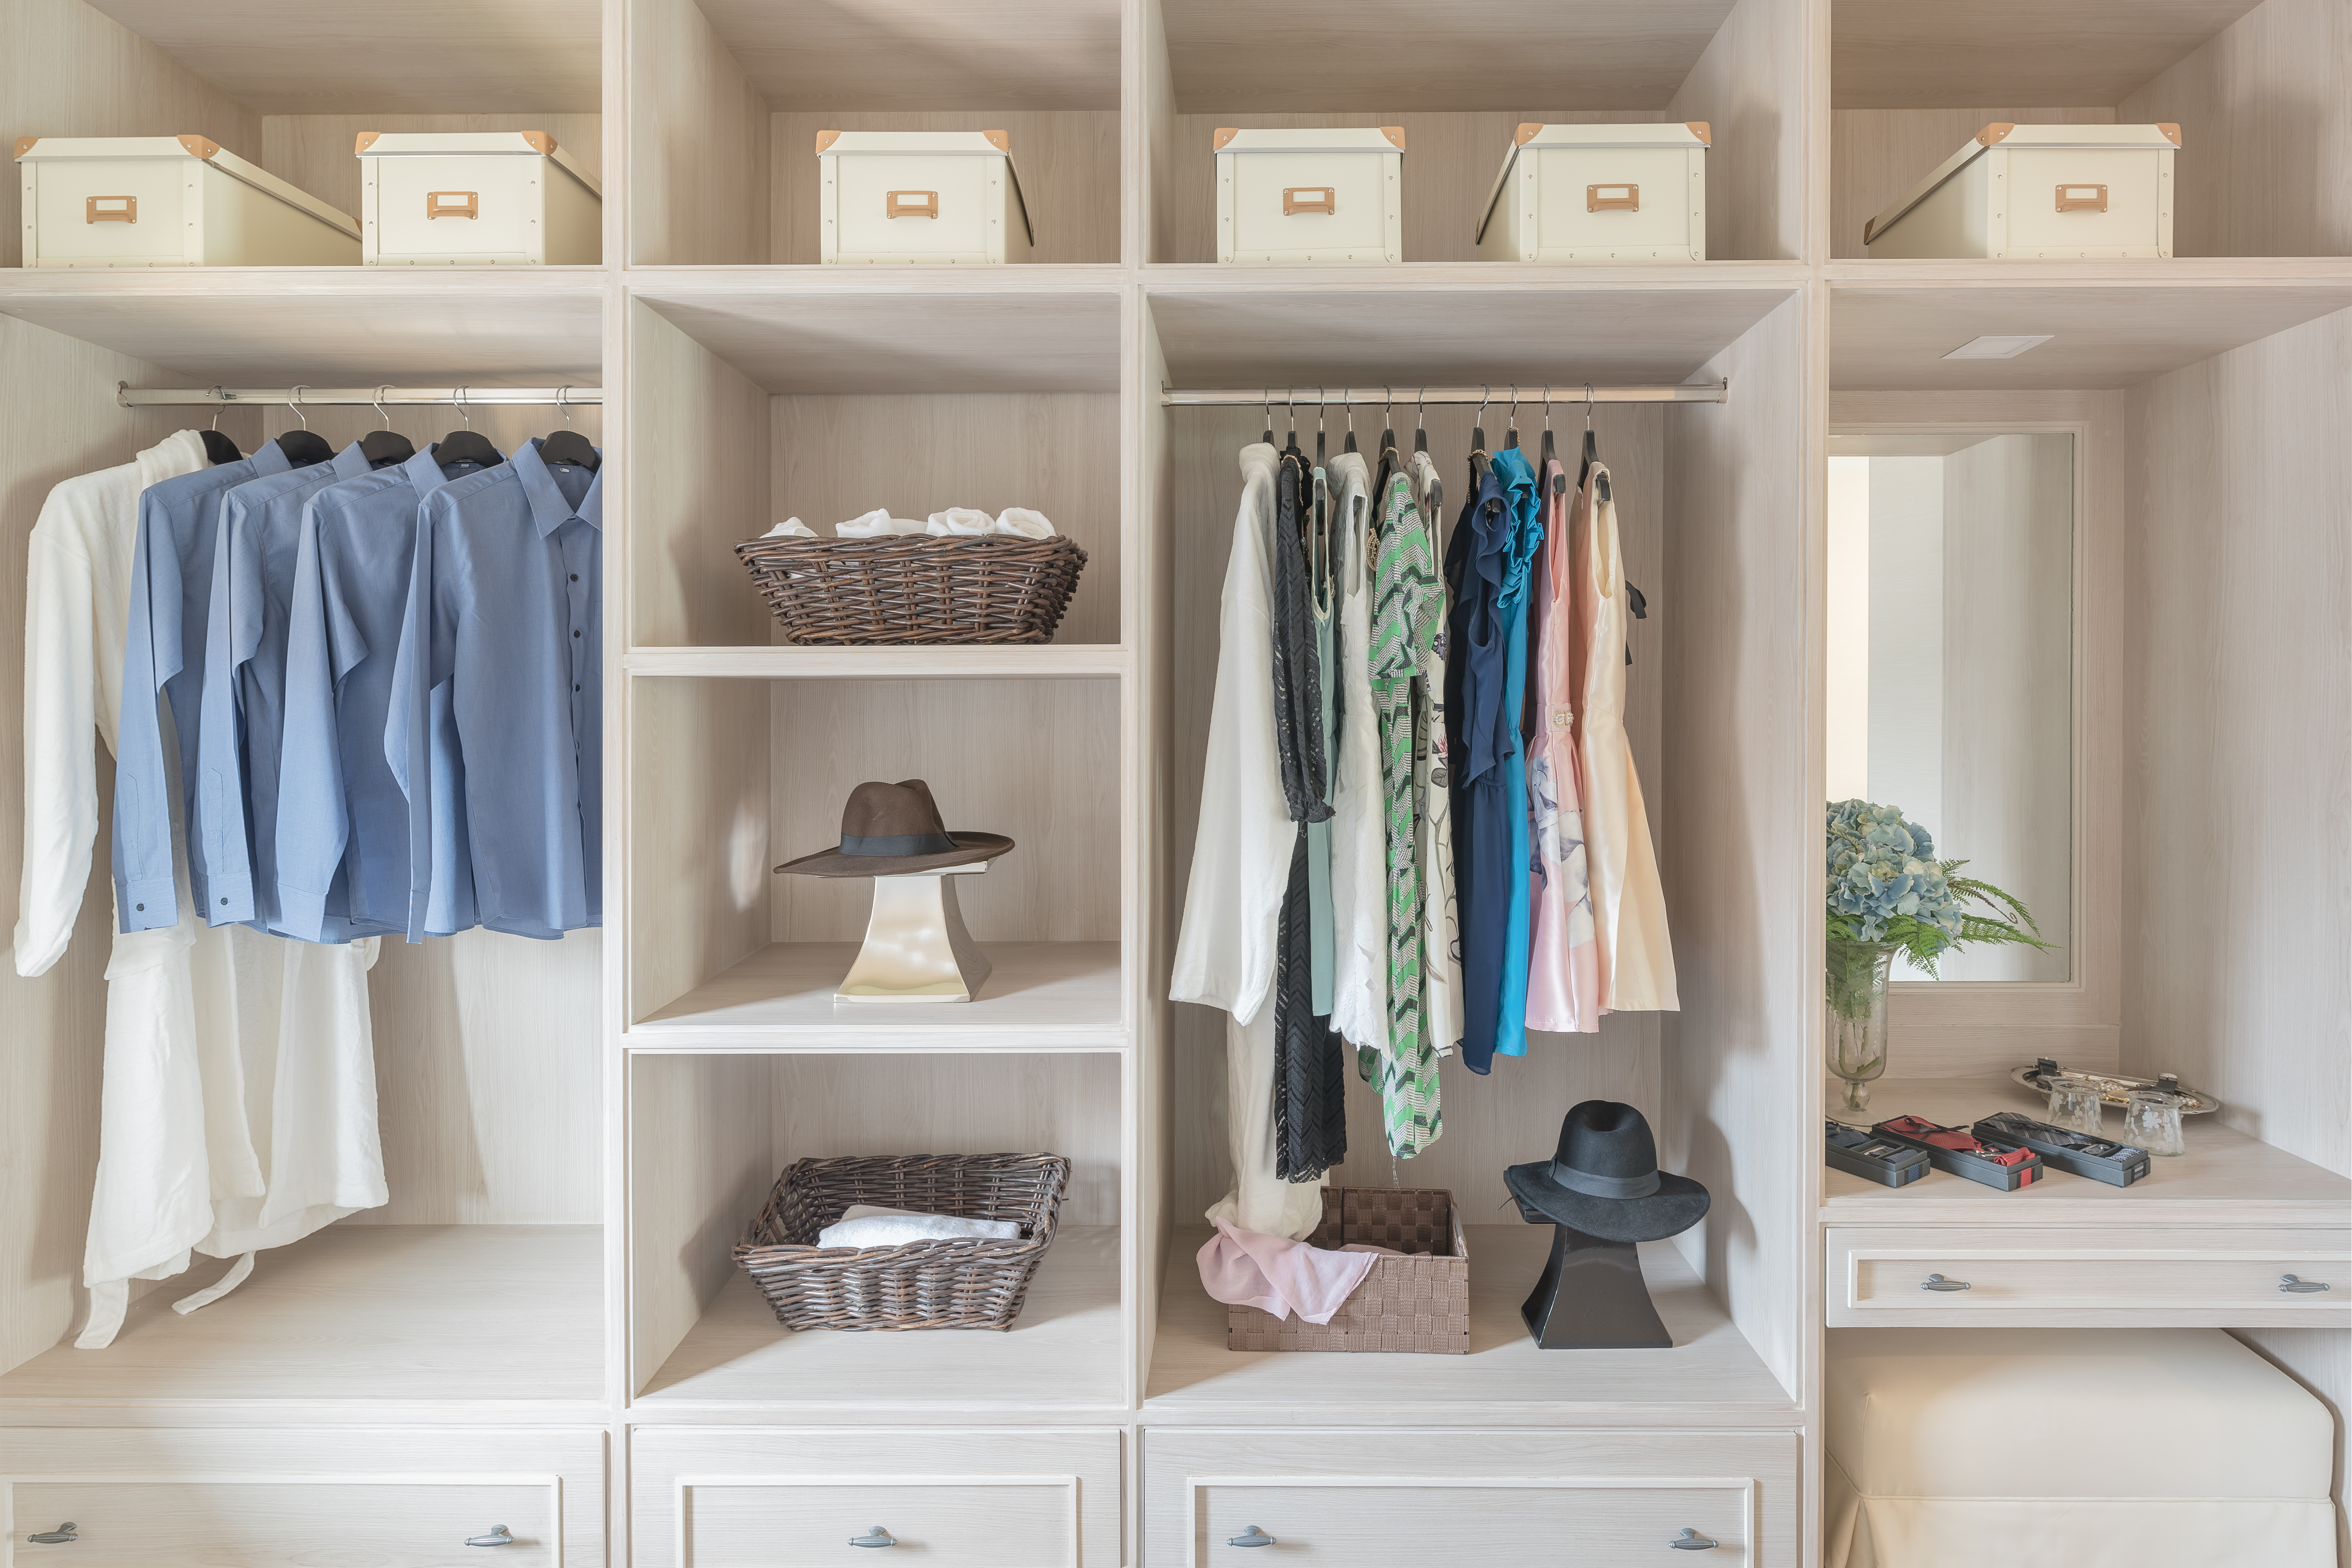 Storage solutions by room offered by Innovative Closet Designs in Wyckoff, New Jersey